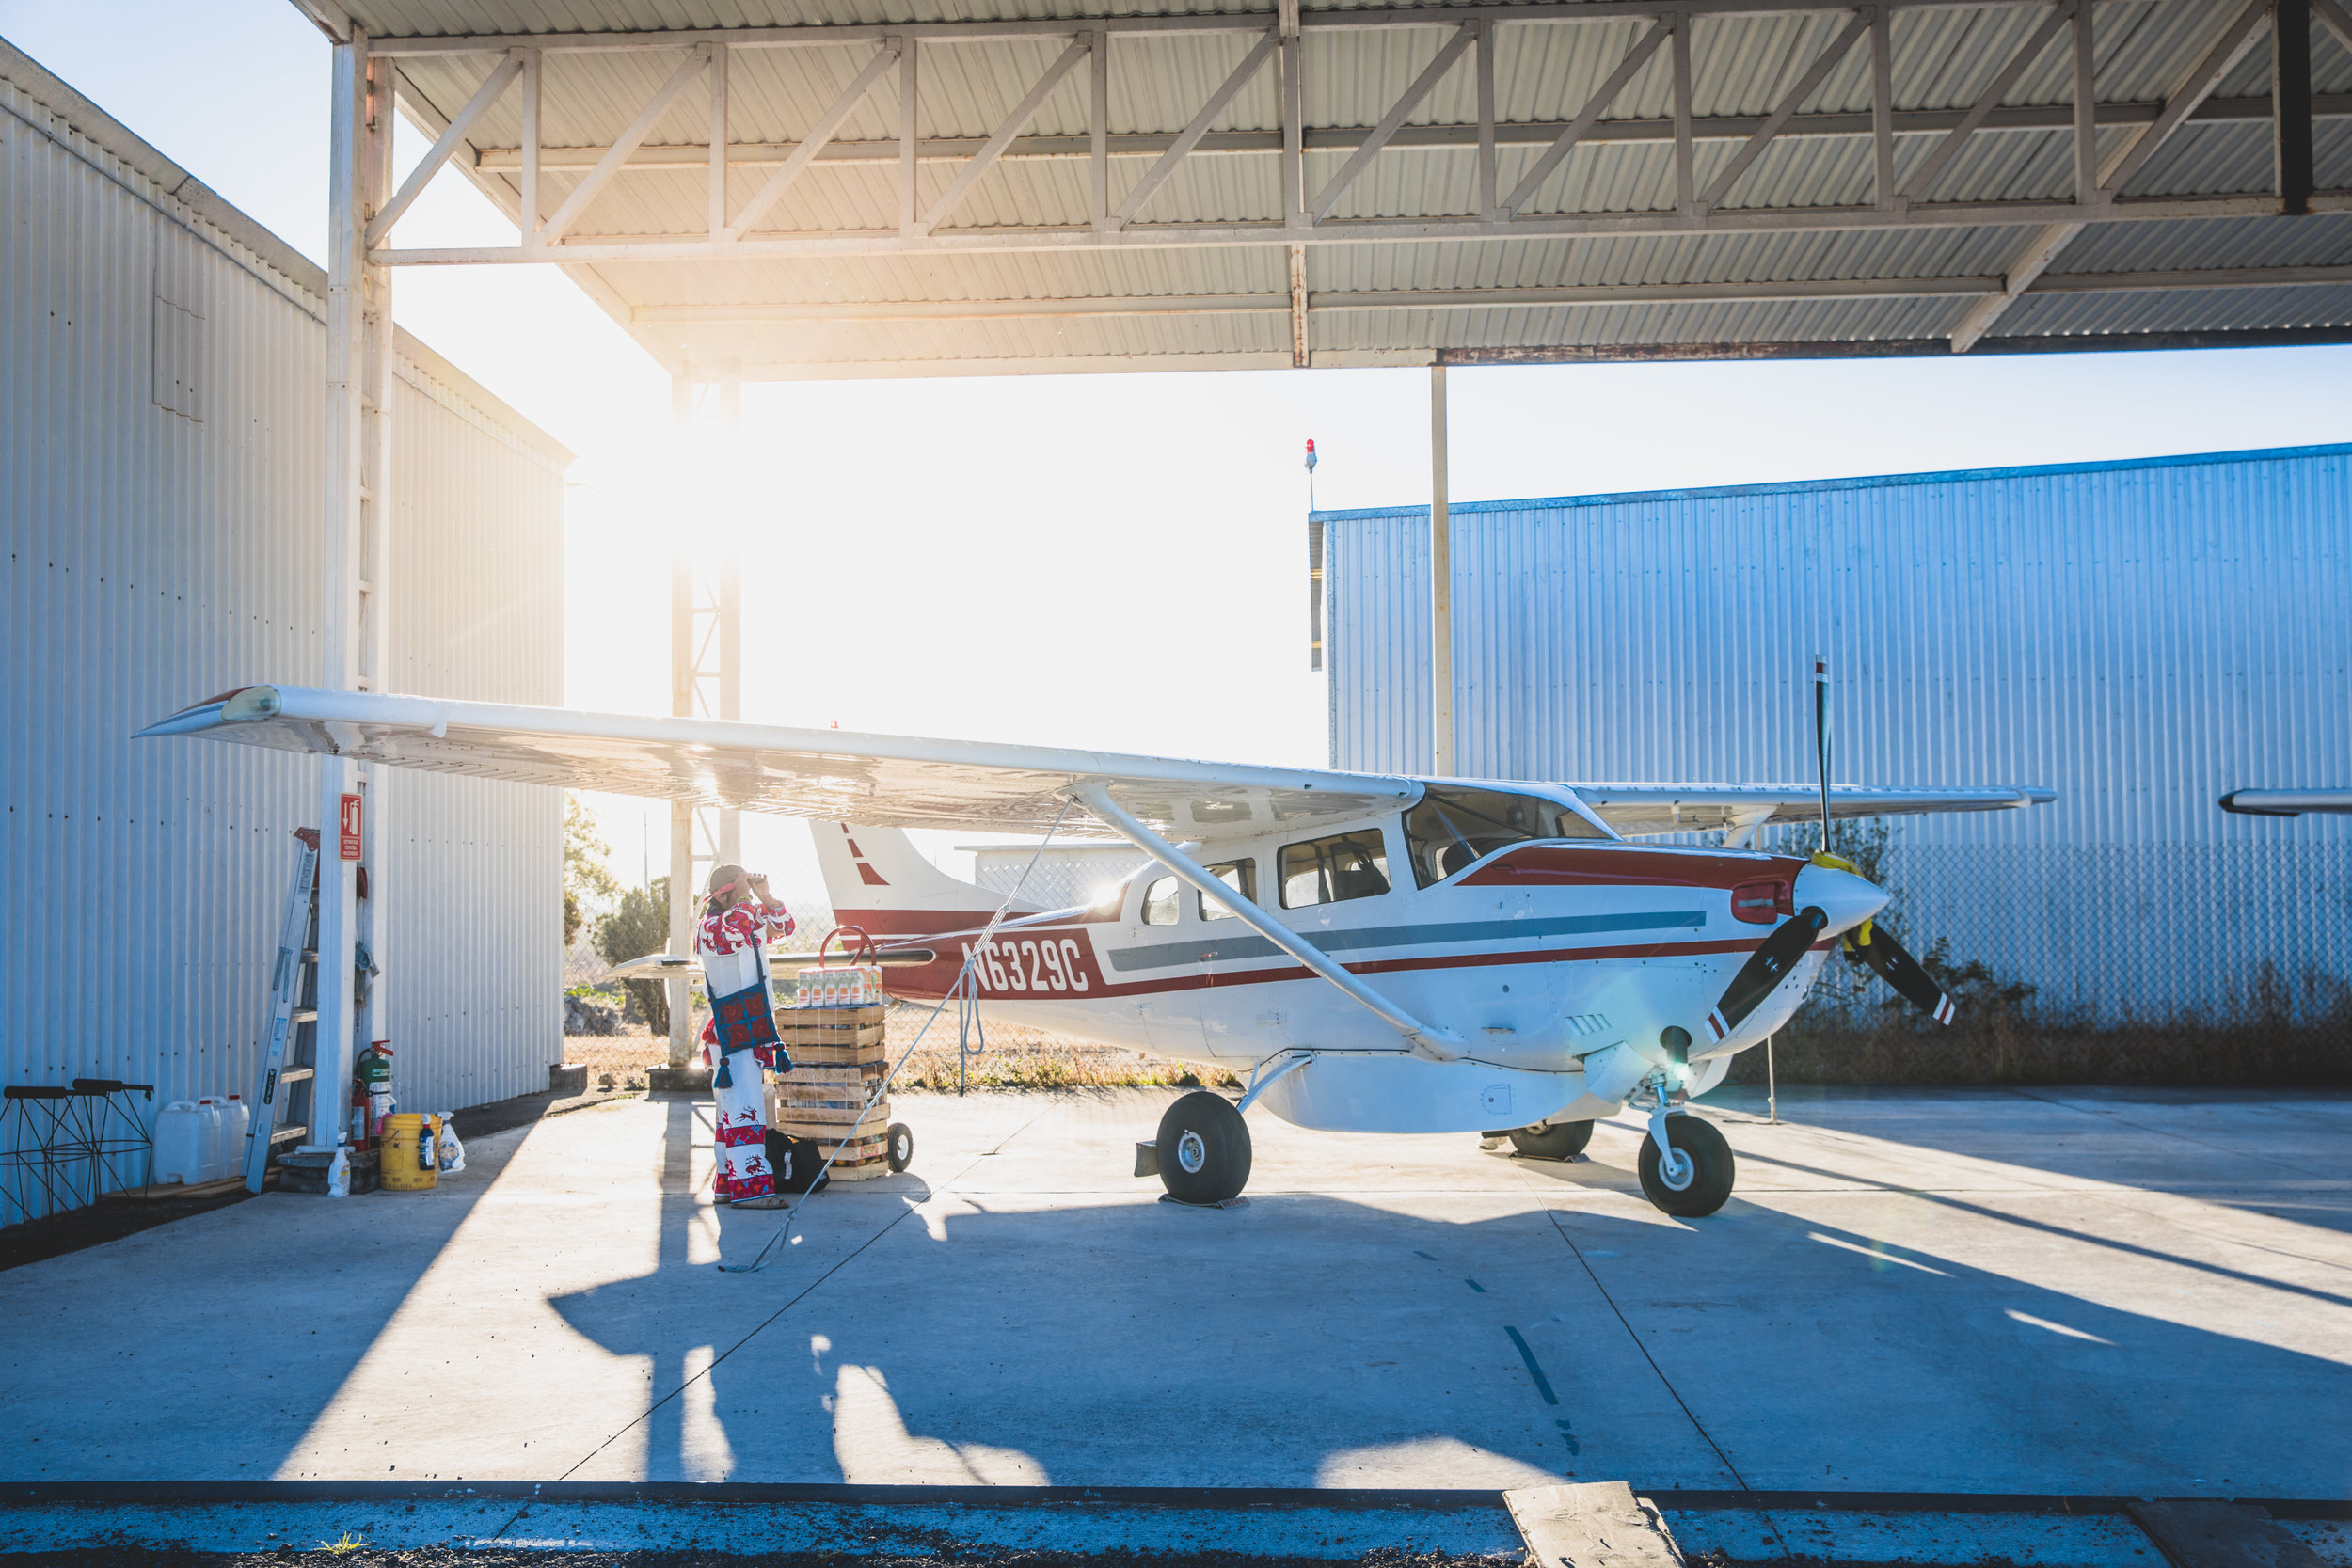 MISSION STATEMENT - UIM Aviation provides logistic support to missionaries, Mexican and native pastors, and medical personnel who are ministering to the isolated tribal people of Mexico.